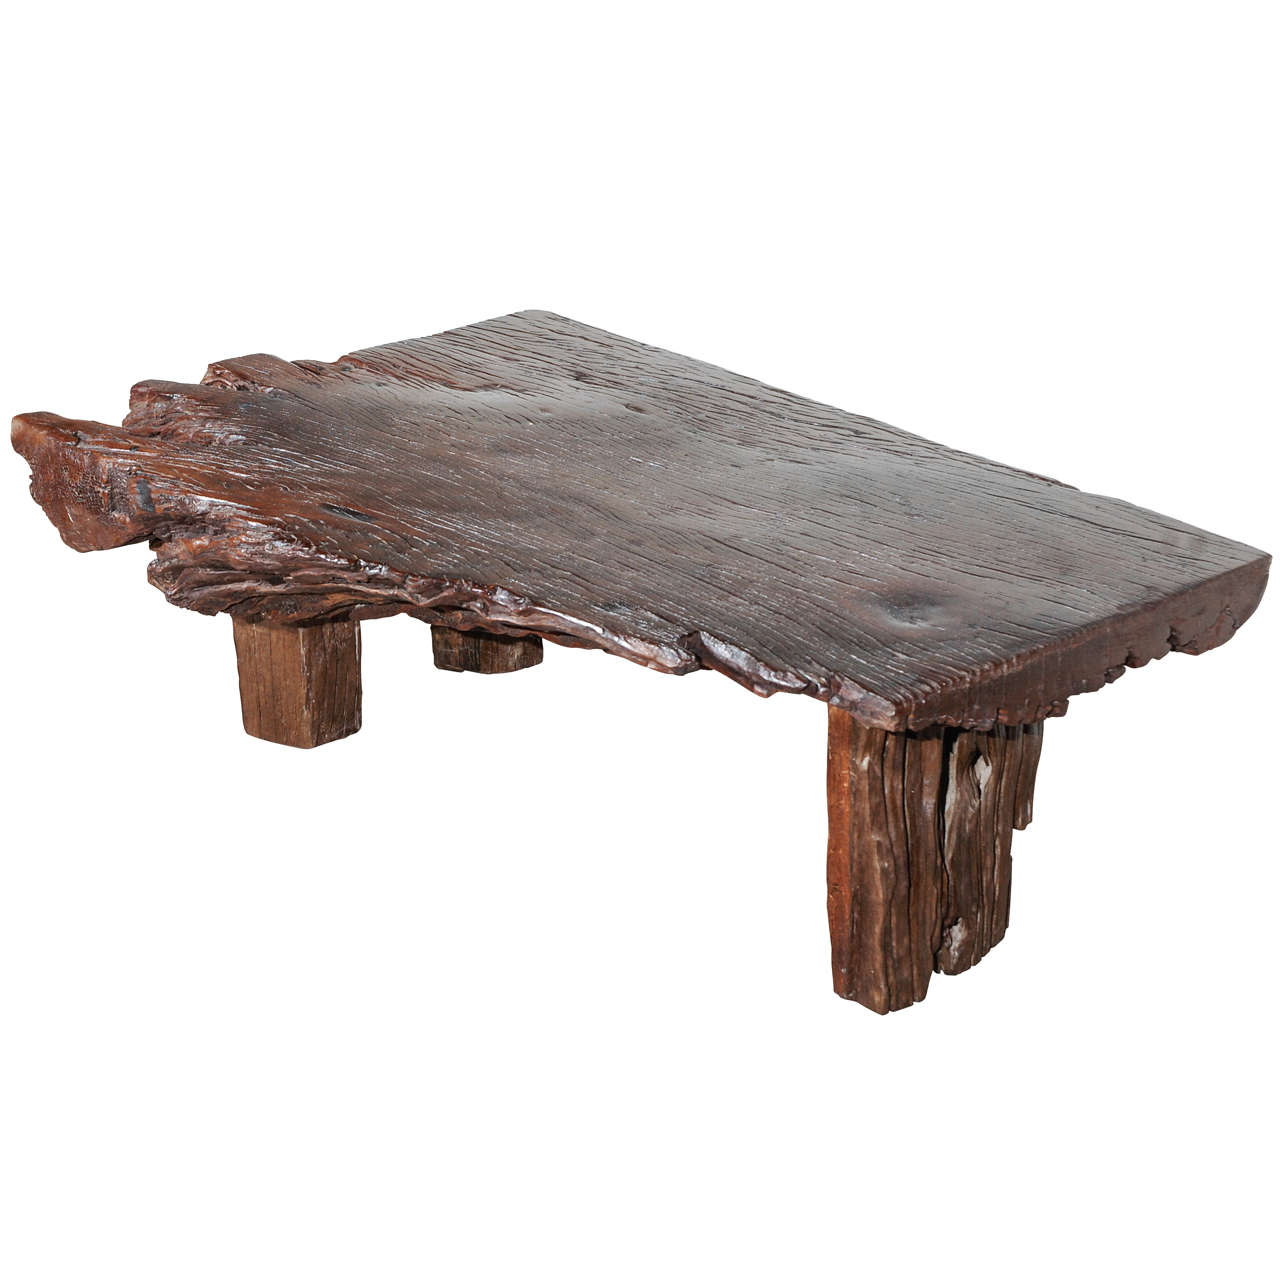 Reclaimed Wood Slab Coffee Table For Sale At 1stdibs